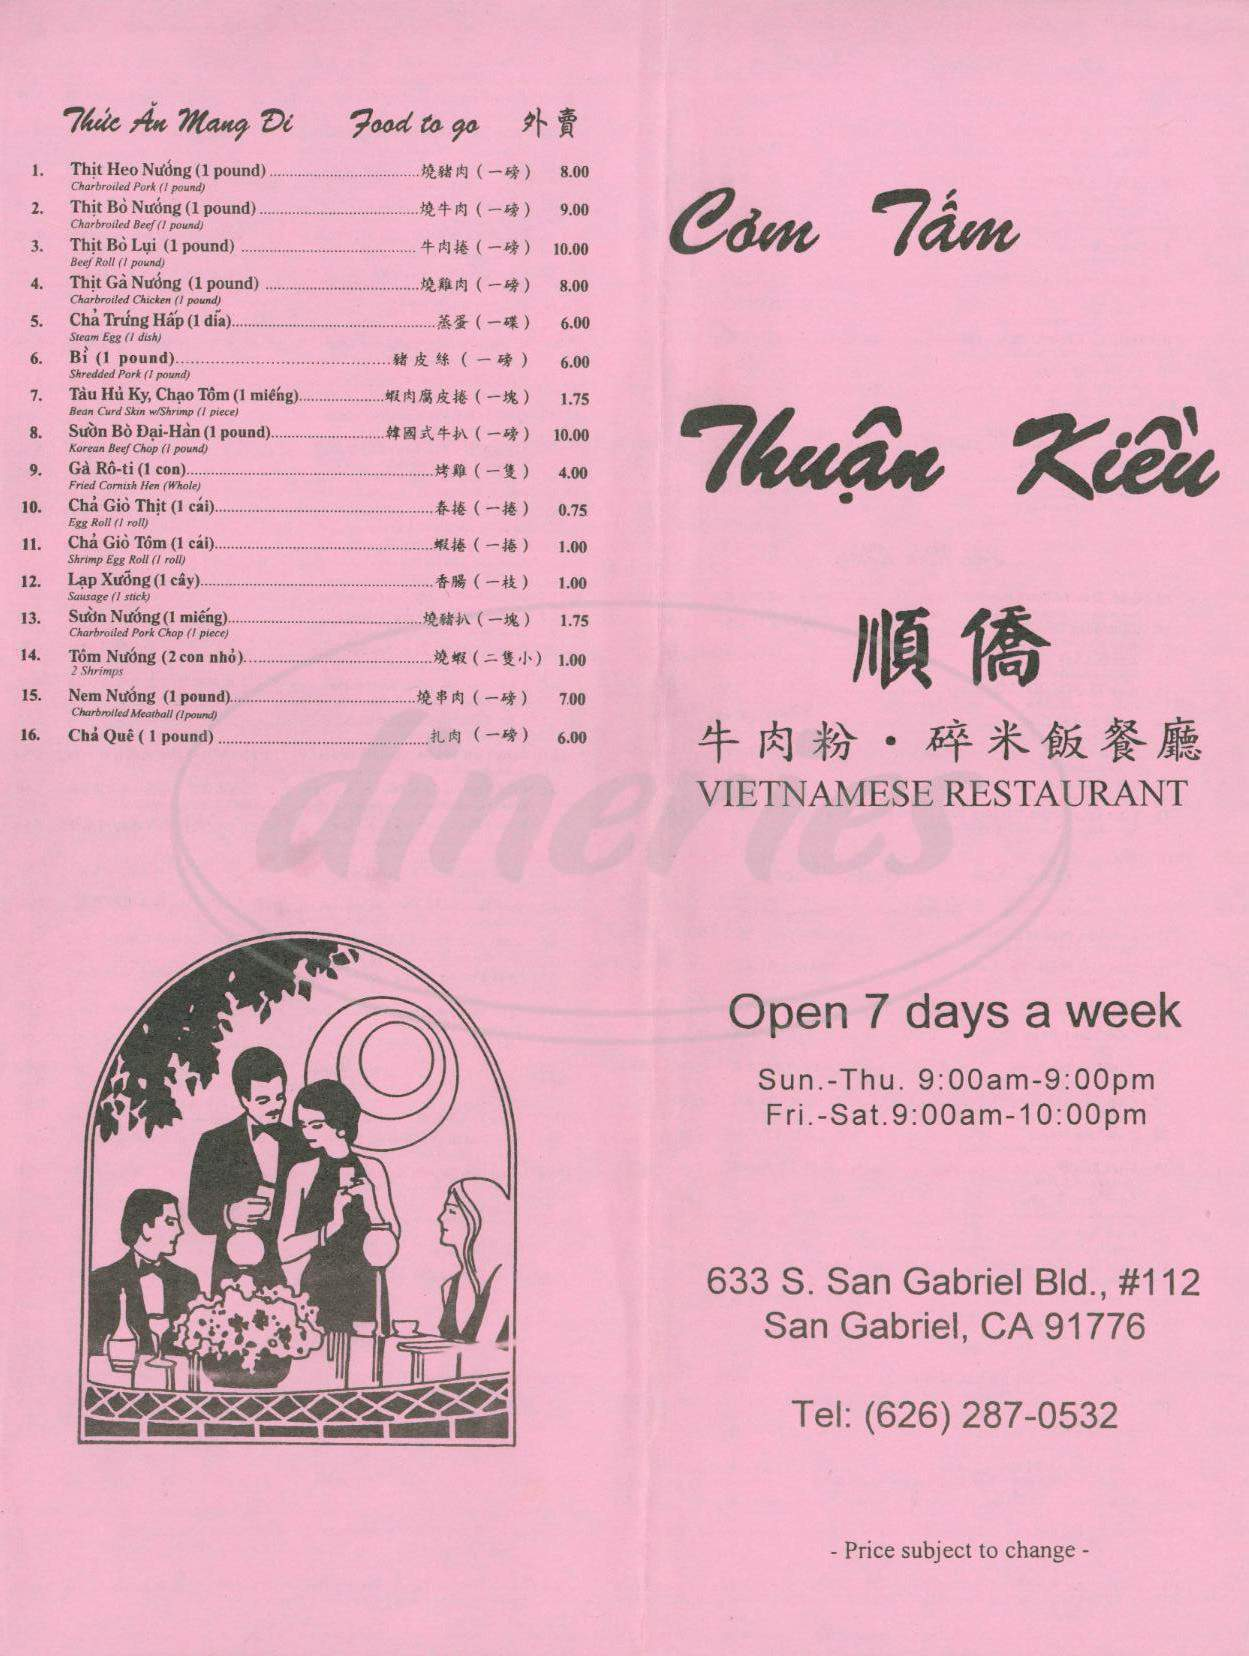 menu for Com Tam Thuan Kieu